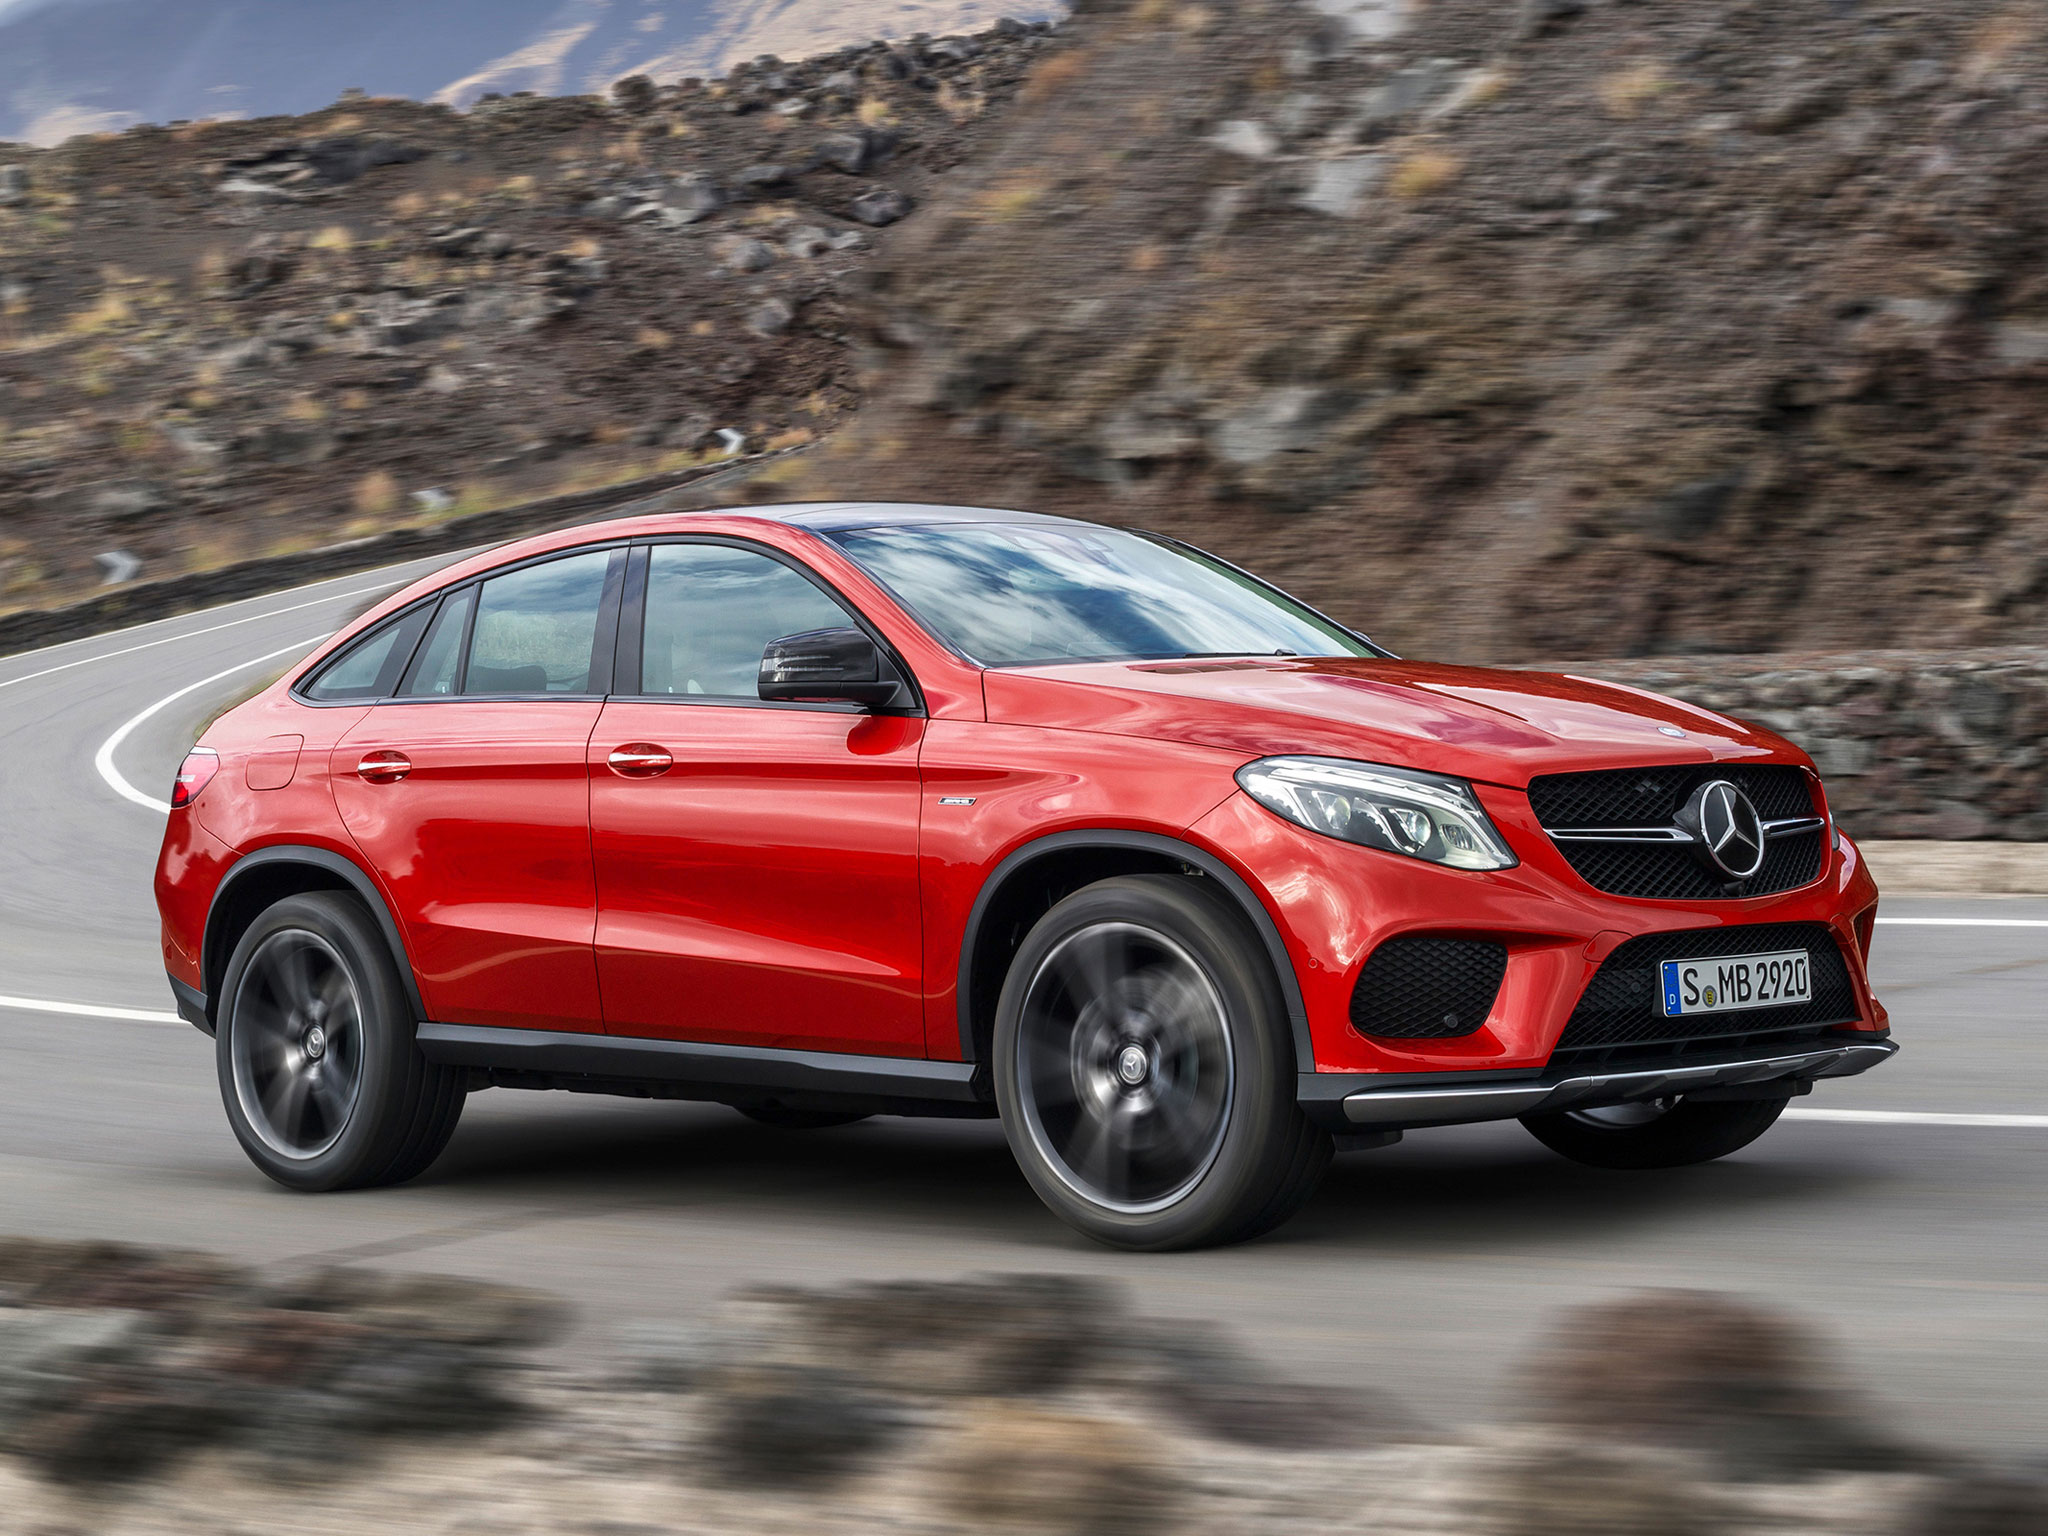 mercedes benz gle coupe 2016 hd wallpapers free download. Black Bedroom Furniture Sets. Home Design Ideas